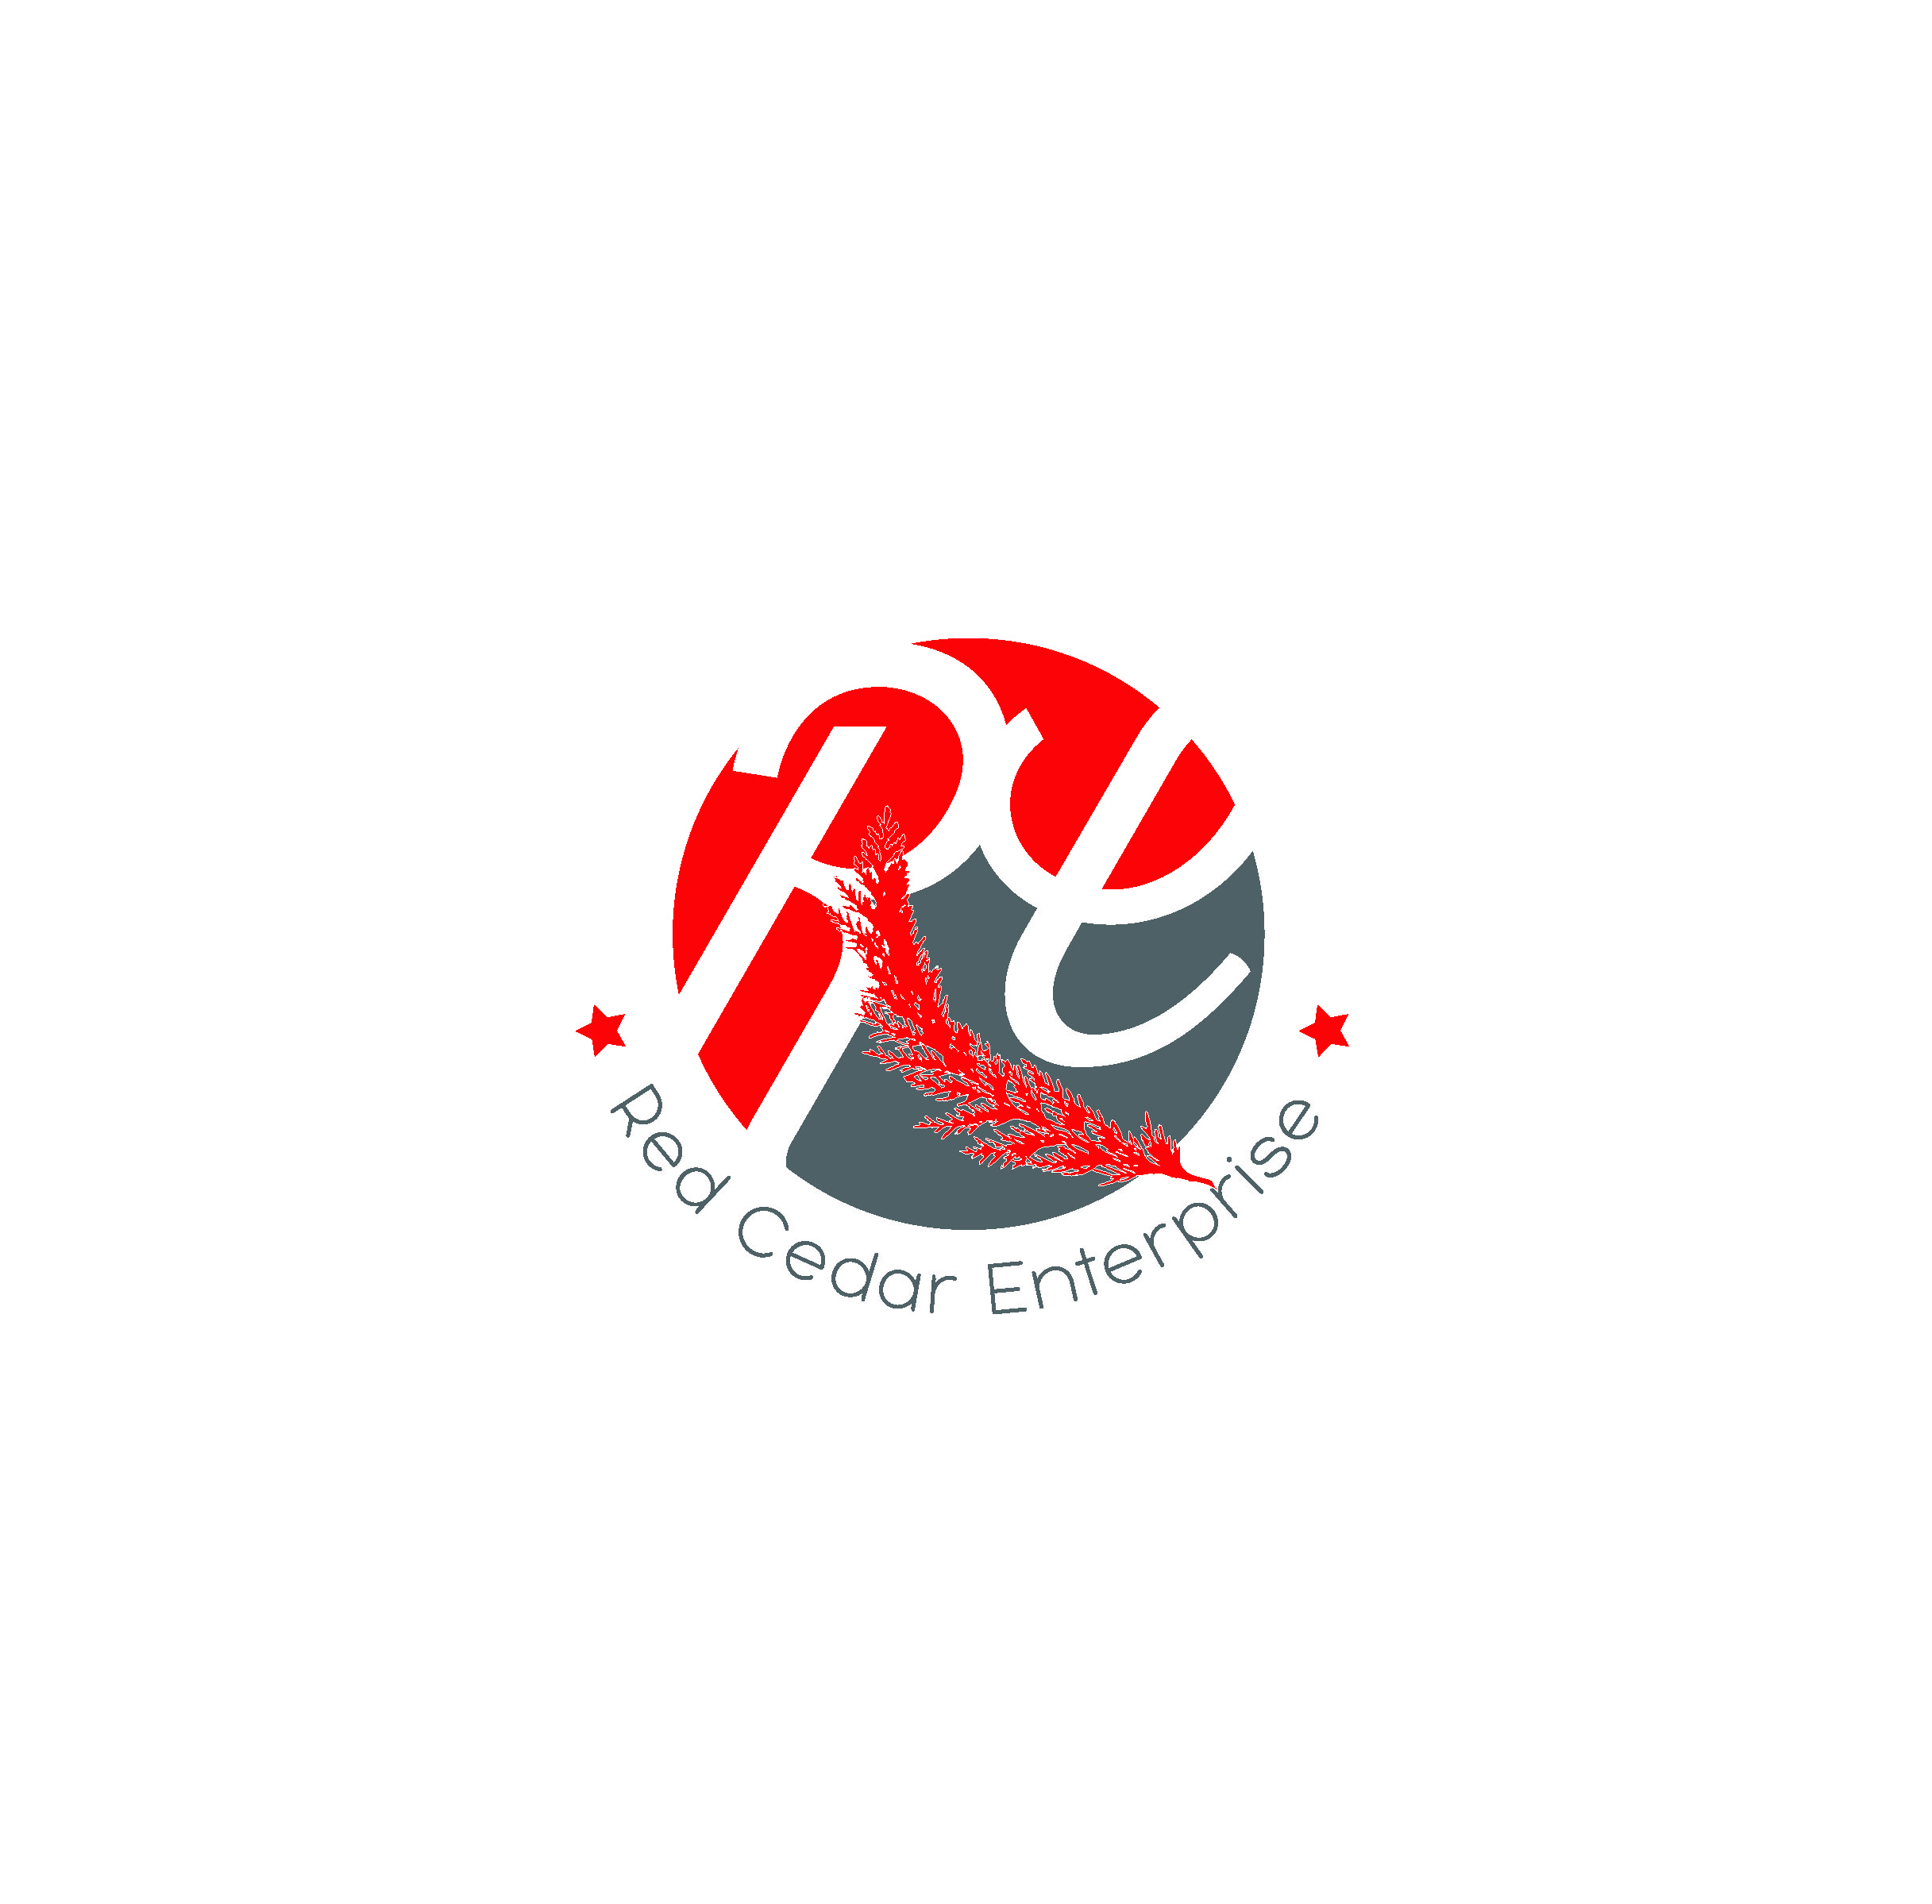 Logo Design by Sampath Gunathilaka - Entry No. 153 in the Logo Design Contest Unique Logo Design Wanted for Red Cedar Enterprise.